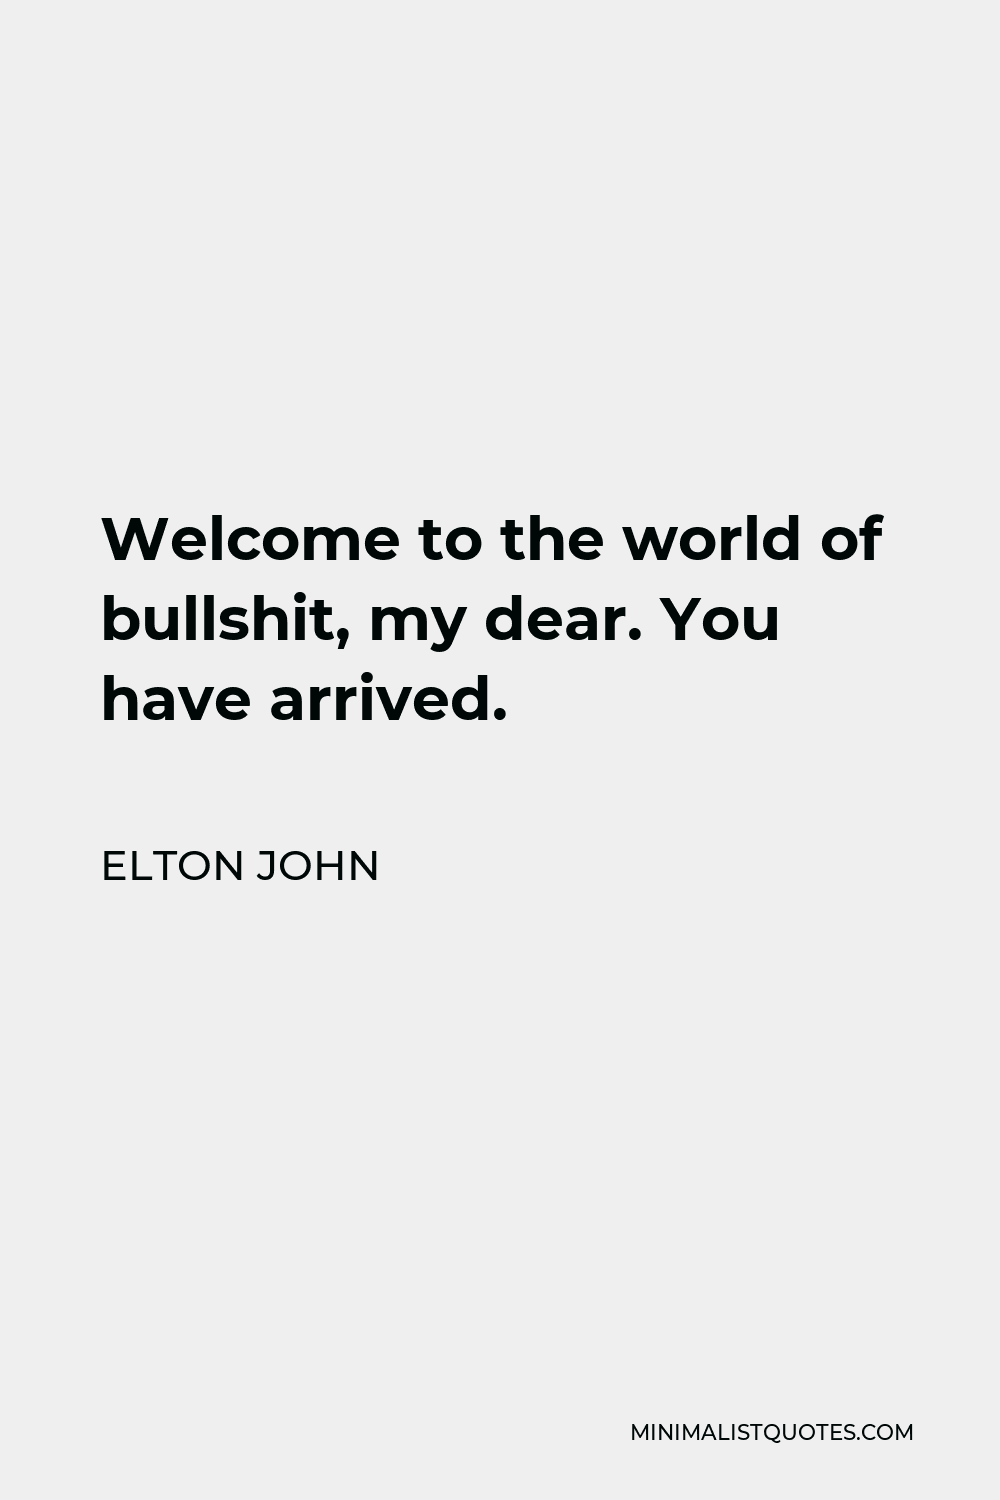 Elton John Quote - Welcome to the world of bullshit, my dear. You have arrived.